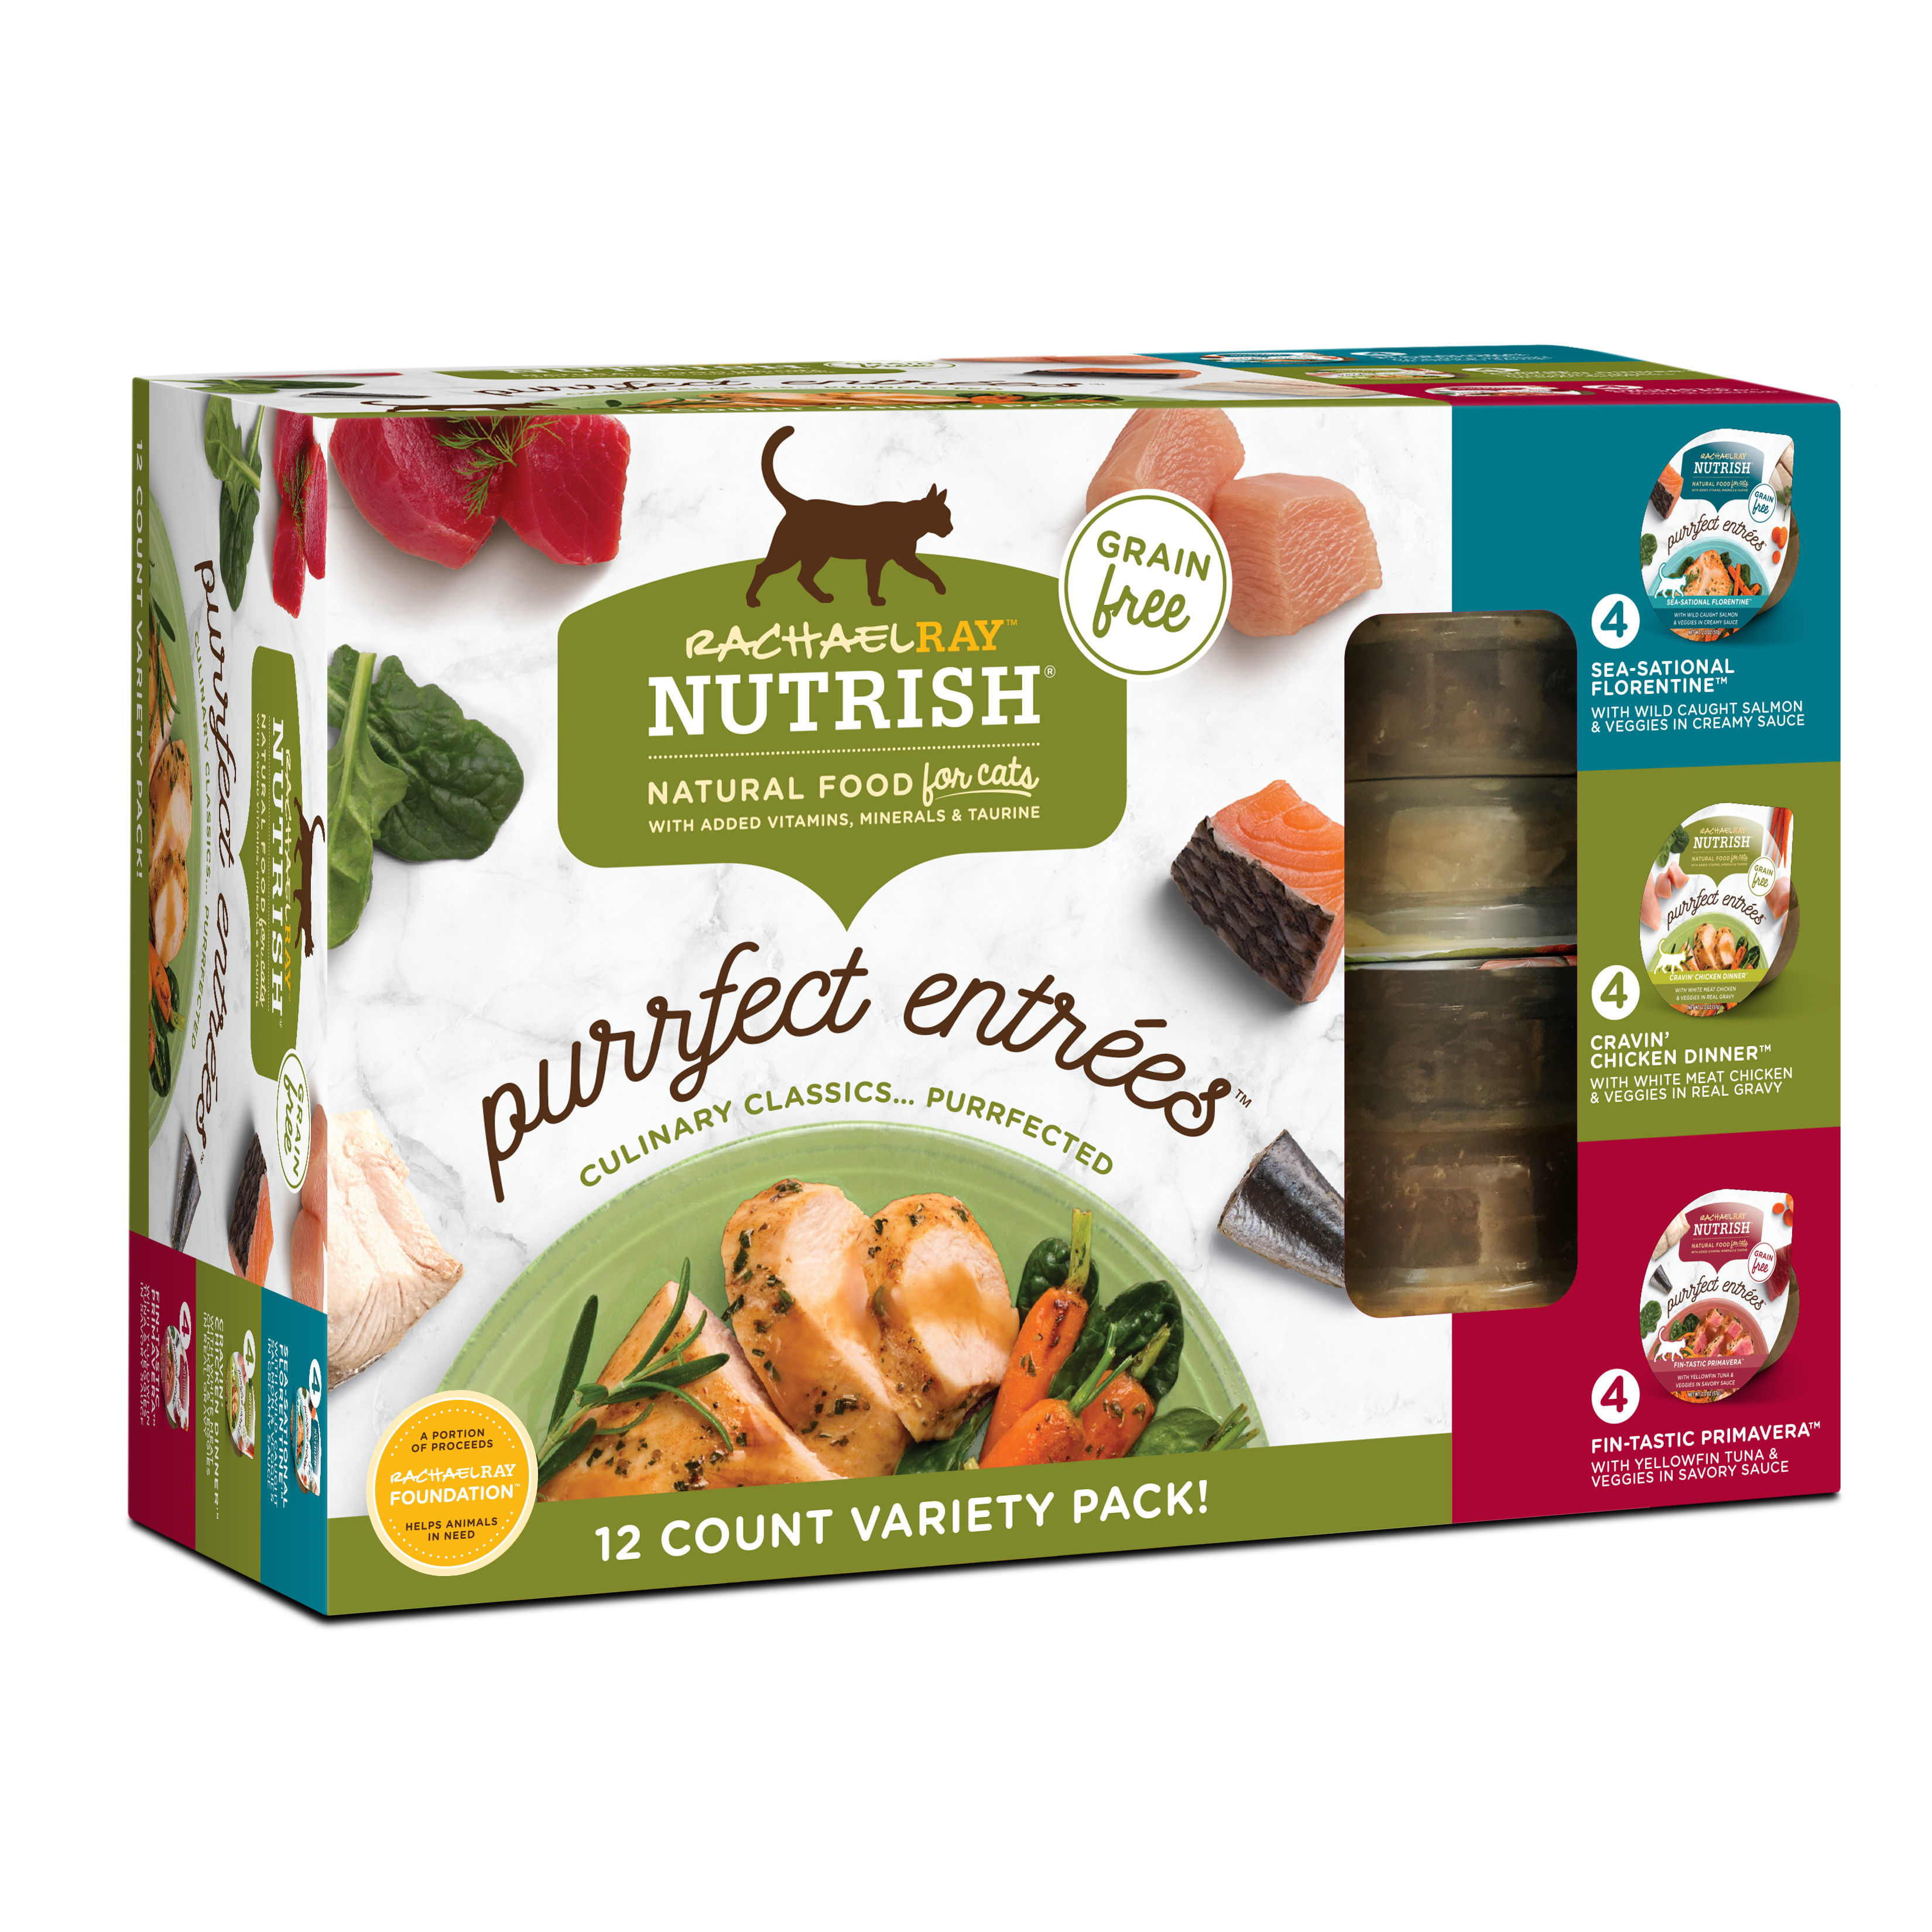 Rachael Ray Nutrish Purrfect Entrees Grain Free Natural Wet Cat Food Variety Pack, 2 oz tubs, 12-count